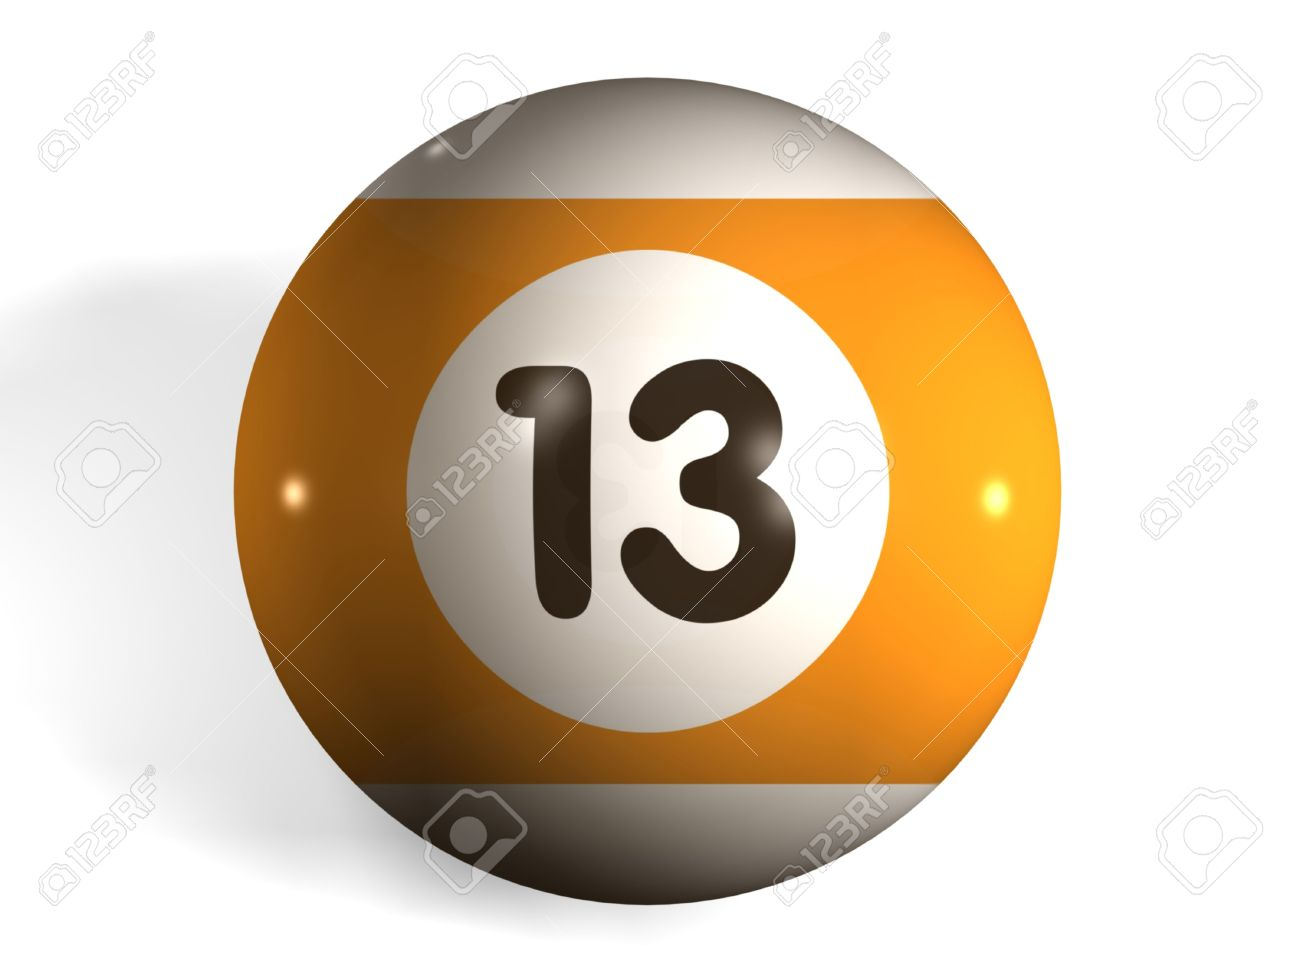 isolated 3d pool ball number 13 stock photo, picture and royalty